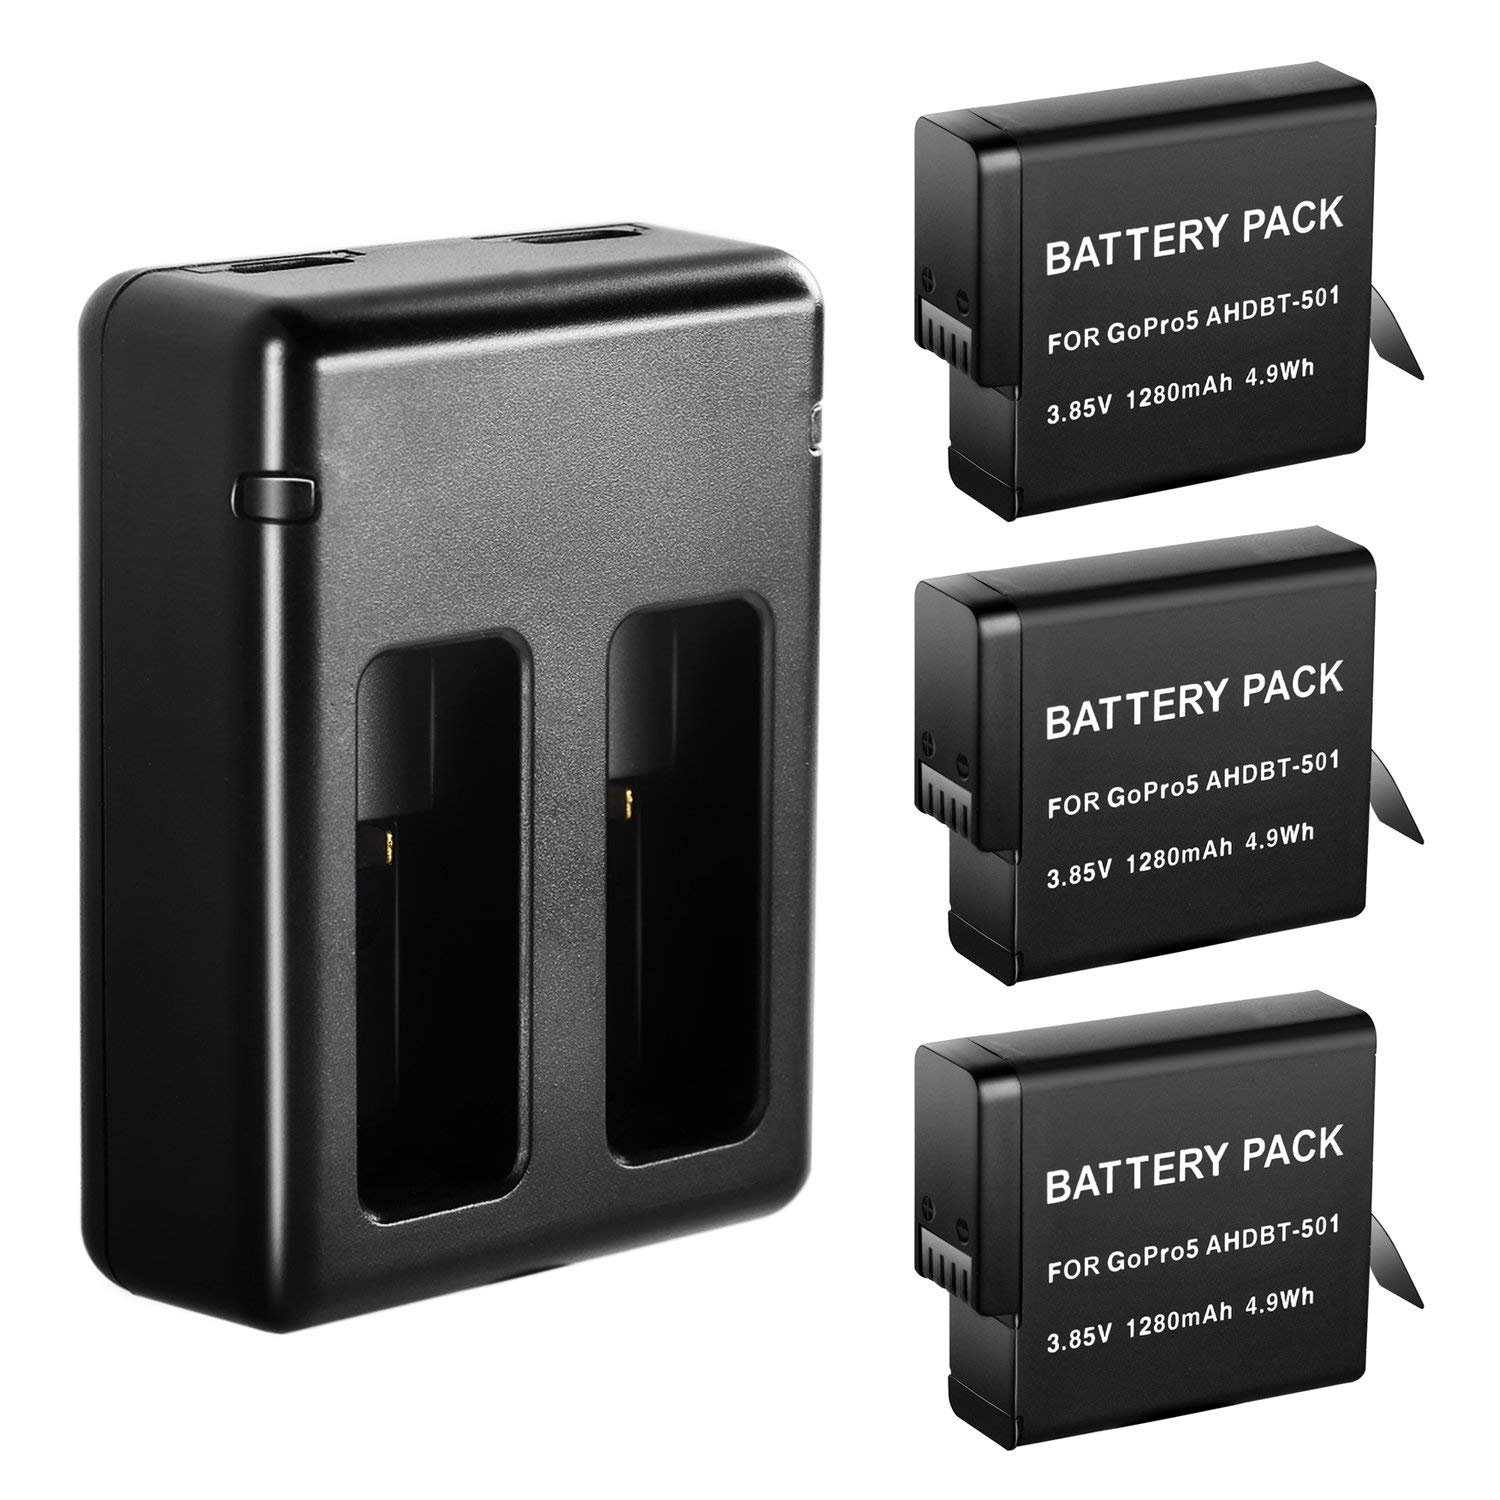 Happyjoy 3-Pack 1280mAh Replacement Battery and Dual Charger for GoPro Hero 5 Hero5 Black